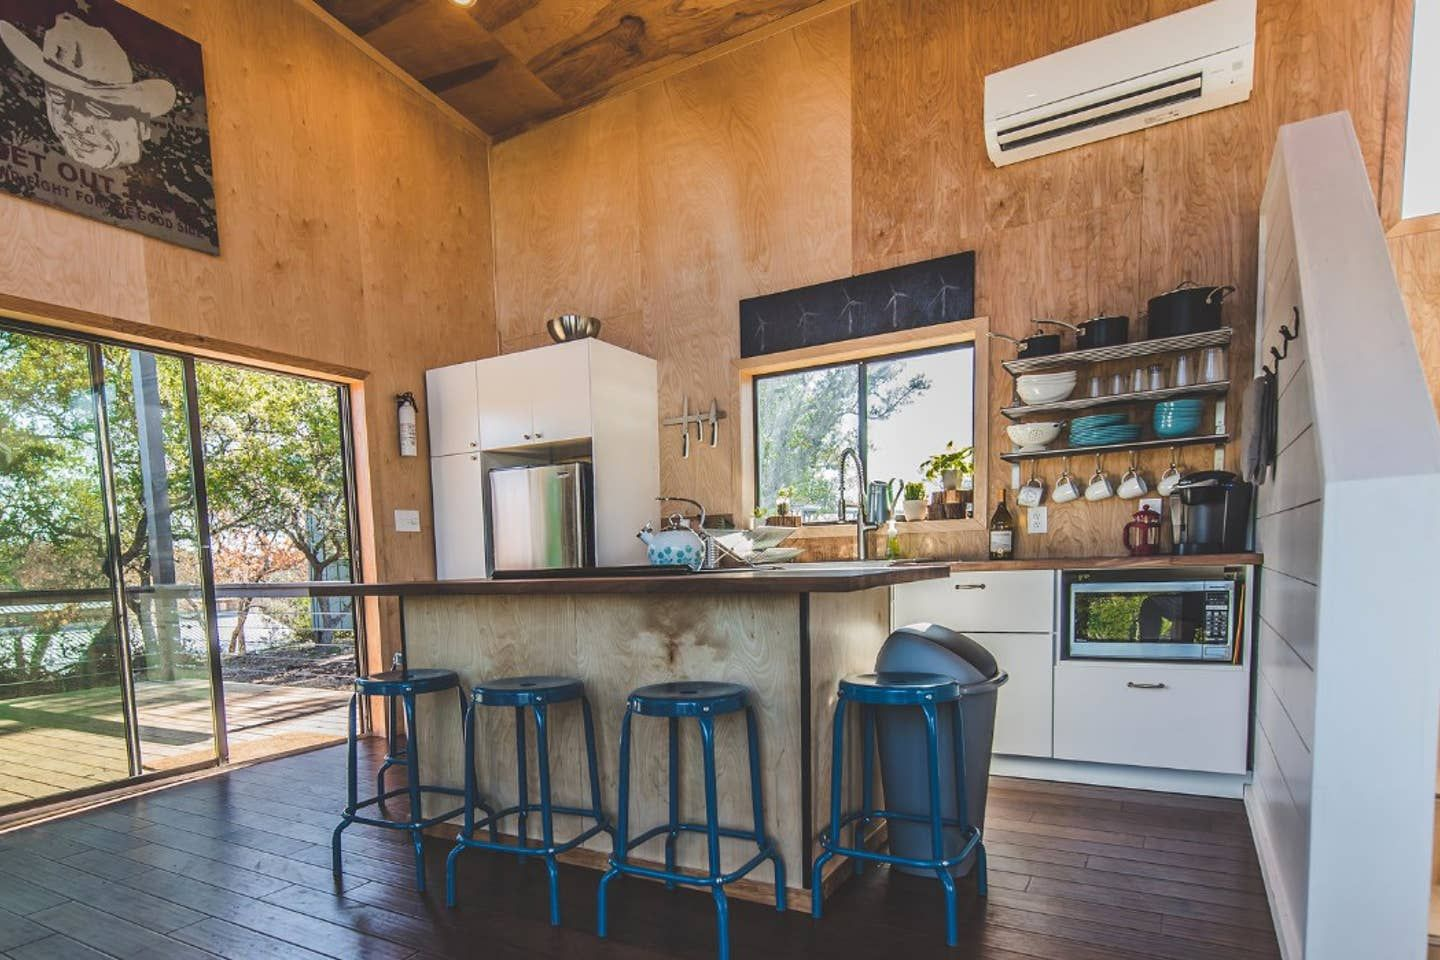 tiny houses for sale in colorado springs